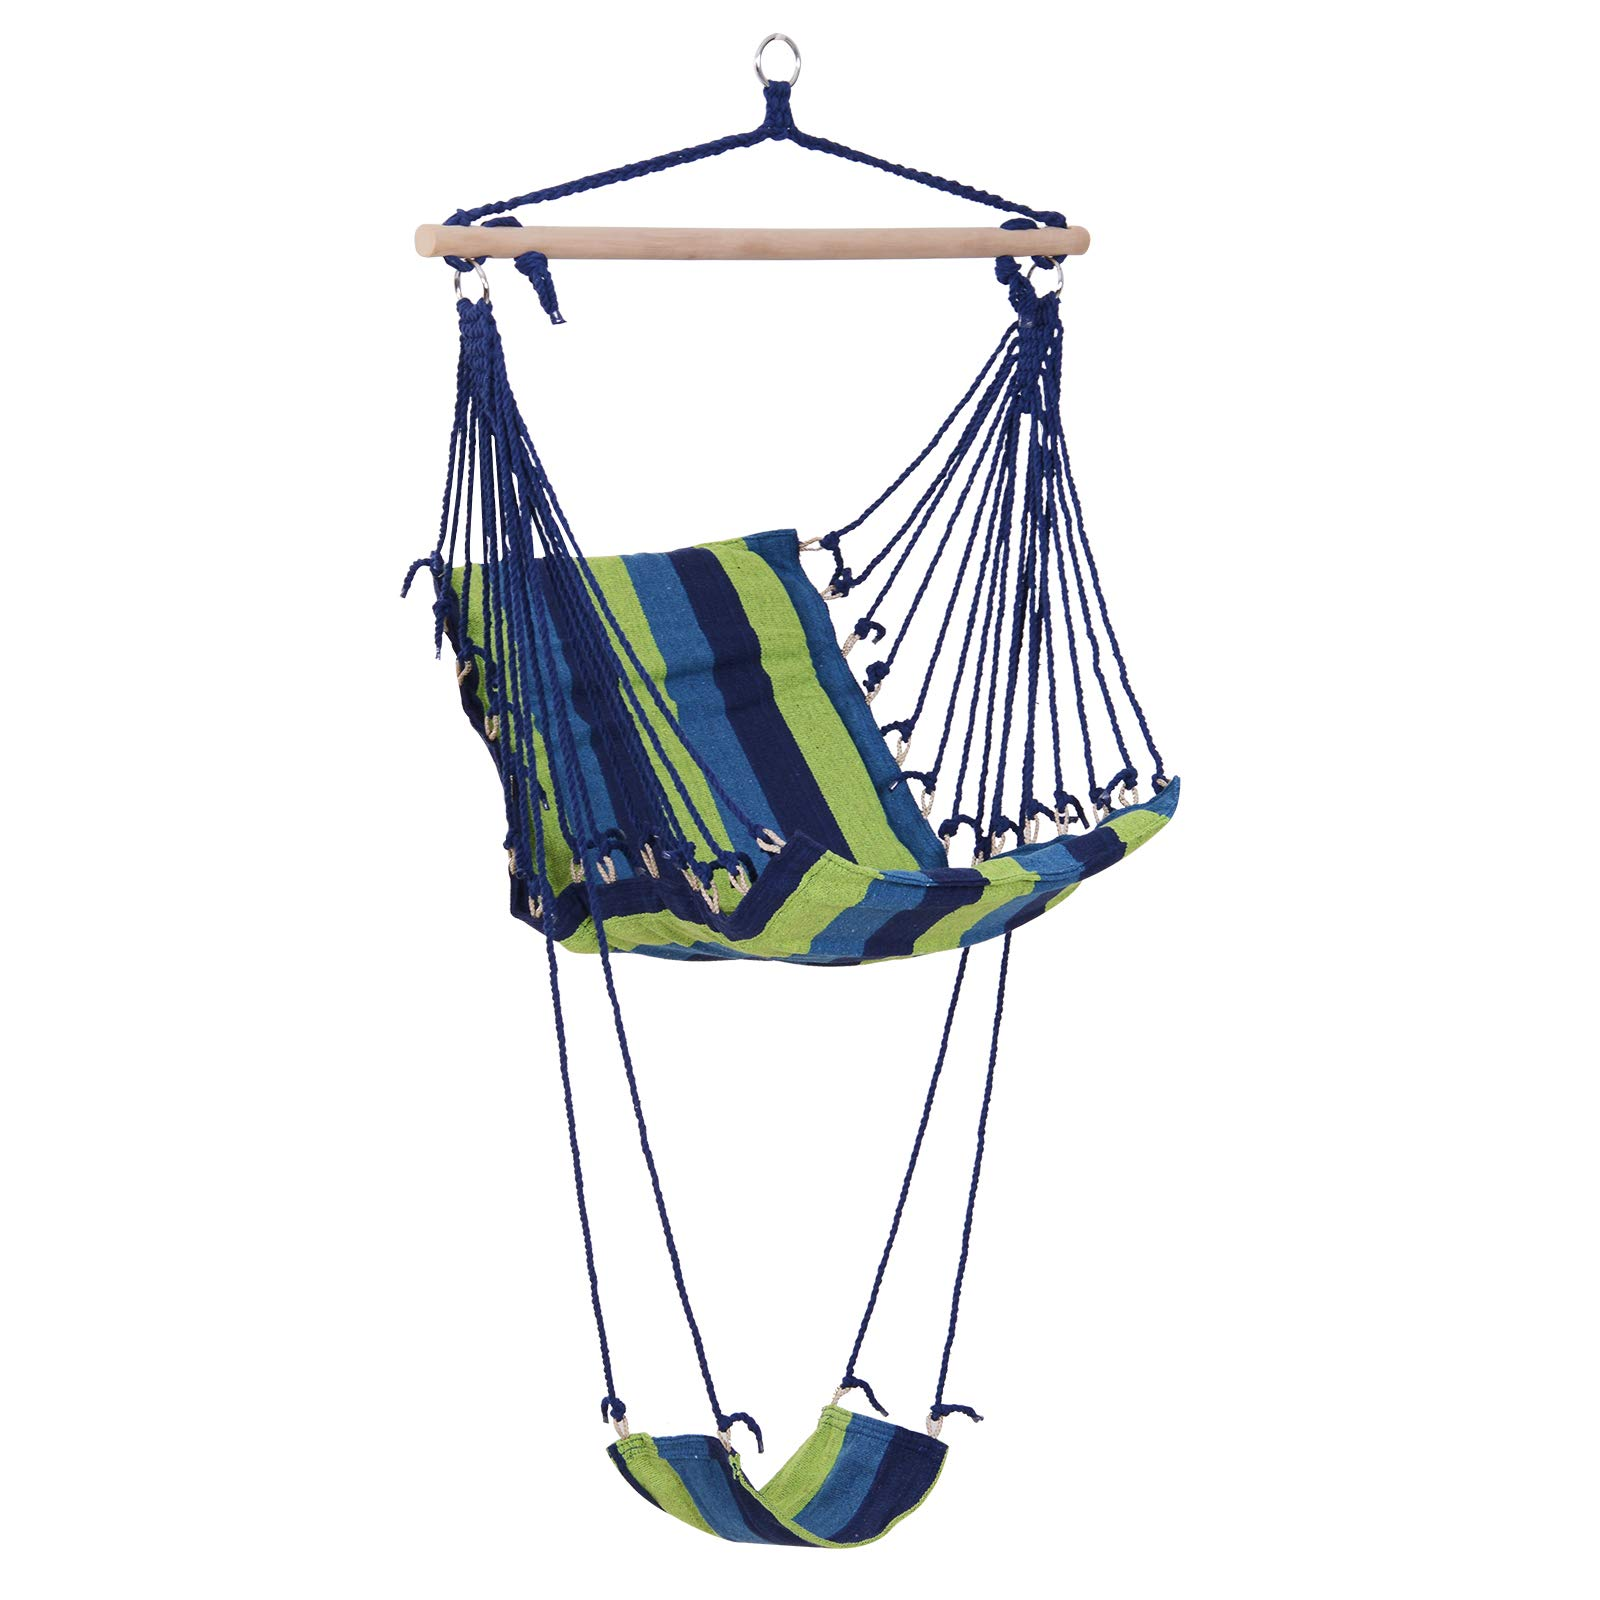 Outsunny Hanging Hammock Chair Swing with Footrest Padded Soft Cushions Indoor/Outdoor - Green and Blue